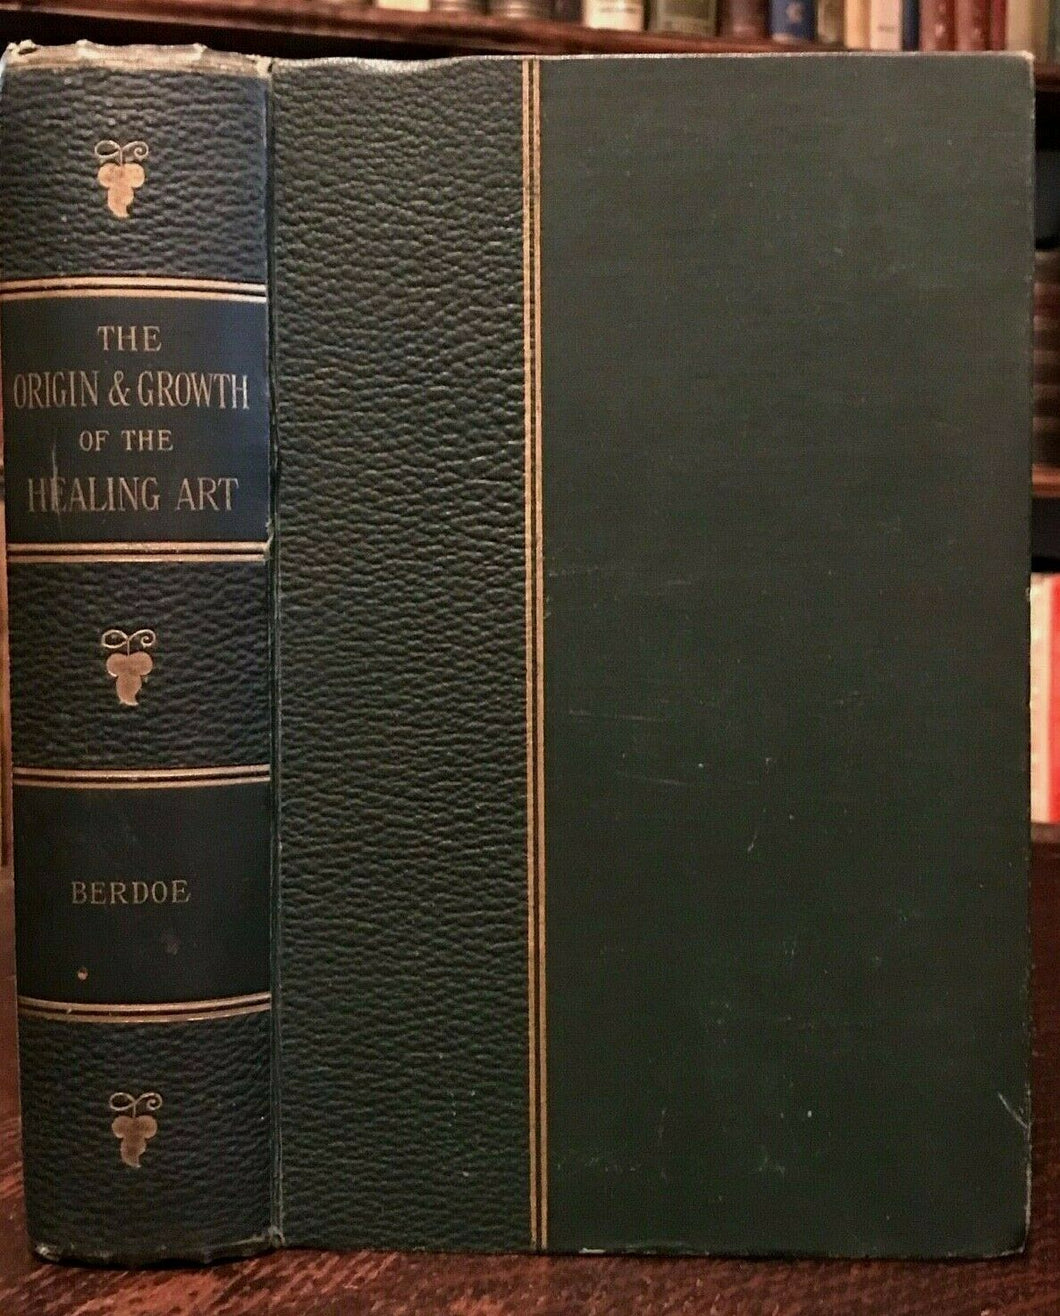 ORIGIN AND GROWTH OF THE HEALING ART - 1st Ed, 1893 - WITCHCRAFT MYTH MEDICINE